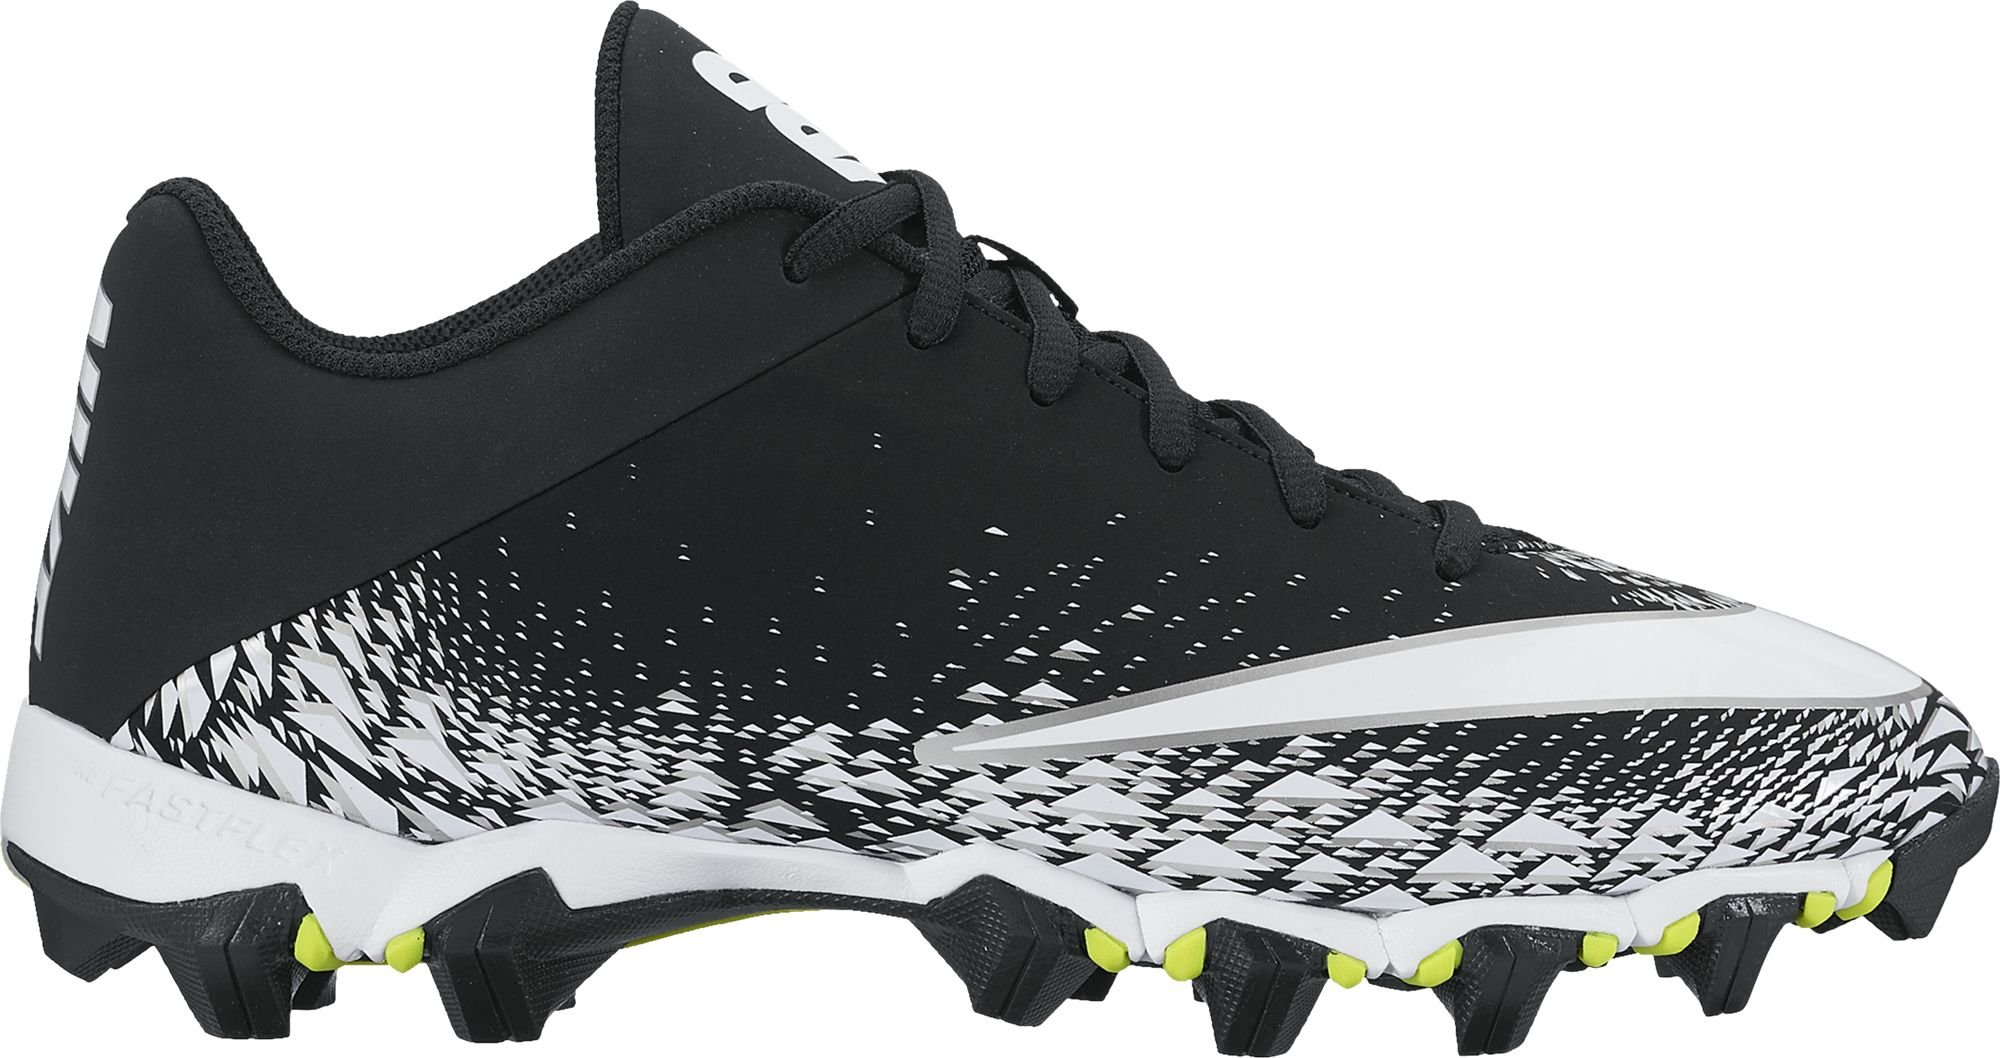 NIKE Men's Vapor Shark 2 Football Cleat Black/White/Metallic Silver Size 9 M US by NIKE